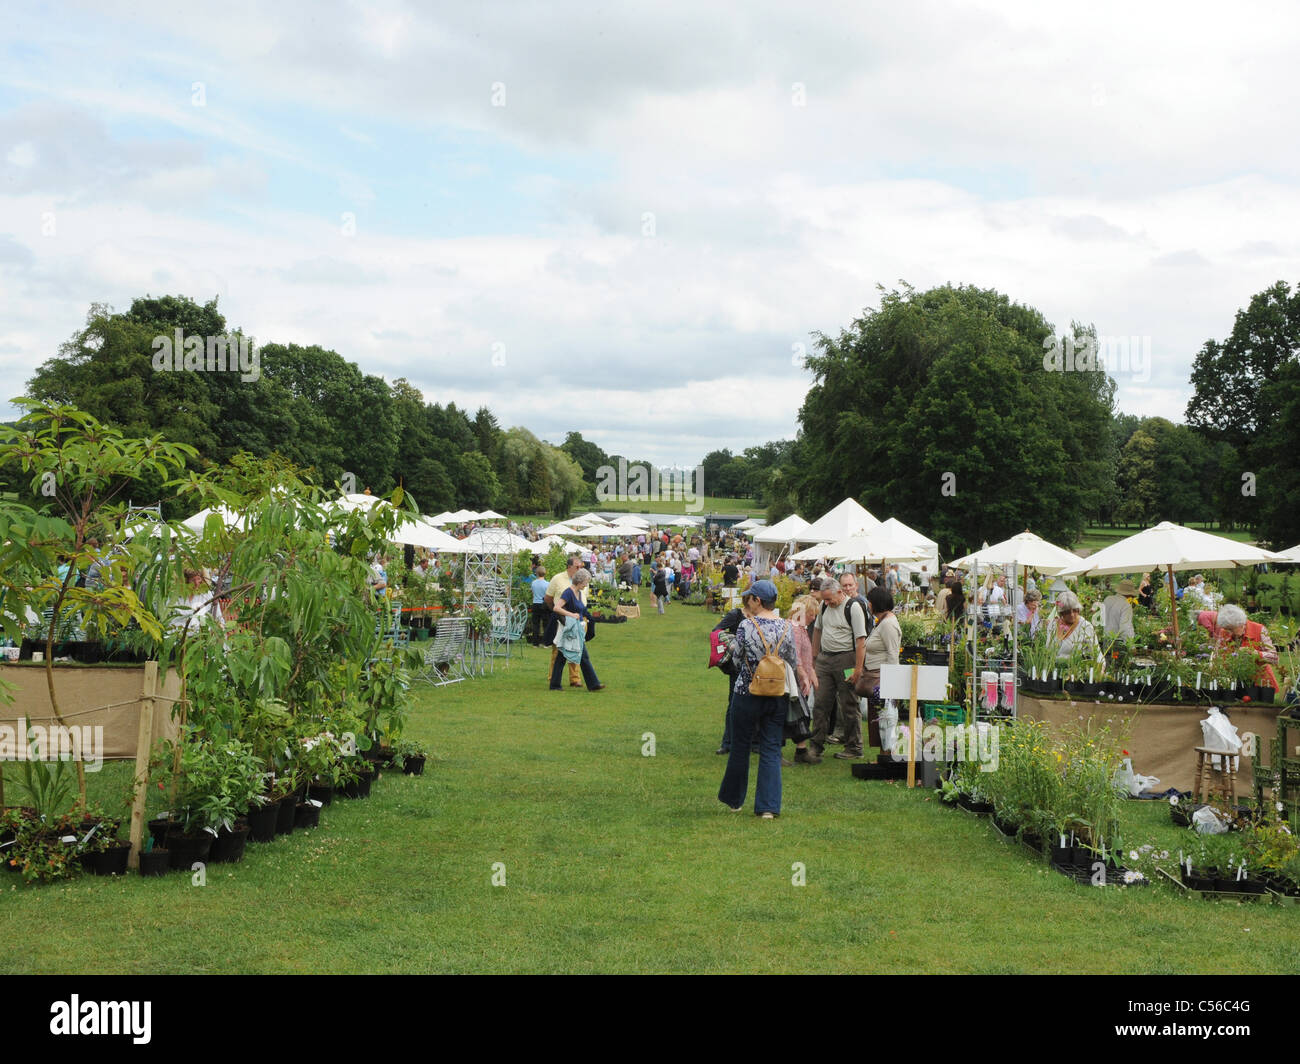 Cottesbrooke Daily Telegraph Plant Buyers Fair, Northampton. - Stock Image